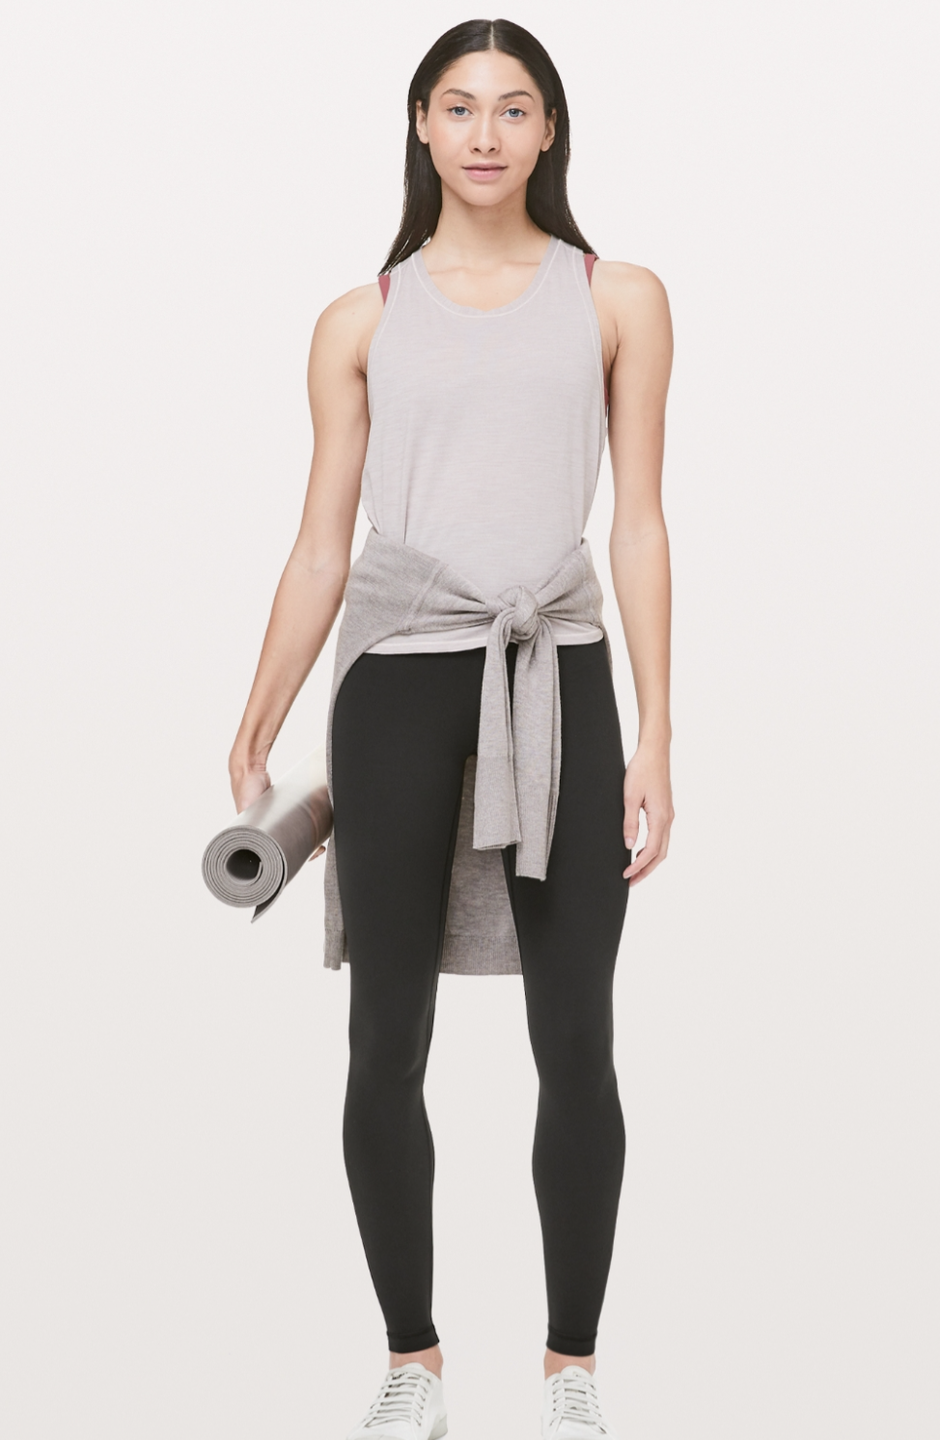 """<p>Wait! We know Lululemon doesn't specifically stock maternity activewear but there's always more space for a few more well-designed tights in our lives – like these <a href=""""https://www.lululemon.co.uk/en-gb/p/wunder-under-high-rise-tight-28%22-full-on-luxtreme/prod8330011.html"""" rel=""""nofollow noopener"""" target=""""_blank"""" data-ylk=""""slk:high-rise leggings"""" class=""""link rapid-noclick-resp"""">high-rise leggings</a>.</p><p>Lulu's stretchy workout gear, wide waistbands and designs hug all body shapes. Useful on your maternity journey but also when you're slowly getting back to <a href=""""https://www.womenshealthmag.com/uk/fitness/workouts/g26130710/post-pregnancy-workout-plan/"""" rel=""""nofollow noopener"""" target=""""_blank"""" data-ylk=""""slk:exercise postpartum"""" class=""""link rapid-noclick-resp"""">exercise postpartum</a>. </p><p>Notable mentions here too for <a href=""""https://www.gap.co.uk/gap/maternity/clothing/activewear/?nav=meganav%3AMaternity%3AClothing%3AActivewear"""" rel=""""nofollow noopener"""" target=""""_blank"""" data-ylk=""""slk:GAP maternity activewear"""" class=""""link rapid-noclick-resp"""">GAP maternity activewear</a> and <a href=""""https://www.seraphine.com/en-gb/maternity-clothes/maternity-sportswear-activewear/"""" rel=""""nofollow noopener"""" target=""""_blank"""" data-ylk=""""slk:Seraphine's maternity workout clothes"""" class=""""link rapid-noclick-resp"""">Seraphine's maternity workout clothes</a> - we feel energised just browsing them.</p><p><a class=""""link rapid-noclick-resp"""" href=""""https://go.redirectingat.com?id=127X1599956&url=https%3A%2F%2Fwww.lululemon.co.uk%2Fen-gb%2Fp%2Flululemon-align%25E2%2584%25A2-super-high-rise-pant-28%2522-online-only%2Fprod9200552.html&sref=https%3A%2F%2Fwww.womenshealthmag.com%2Fuk%2Fhealth%2Fg36261049%2F16-best-maternity-clothes-and-brands-for-trendy-bumps%2F"""" rel=""""nofollow noopener"""" target=""""_blank"""" data-ylk=""""slk:SHOP NOW"""">SHOP NOW</a></p>"""